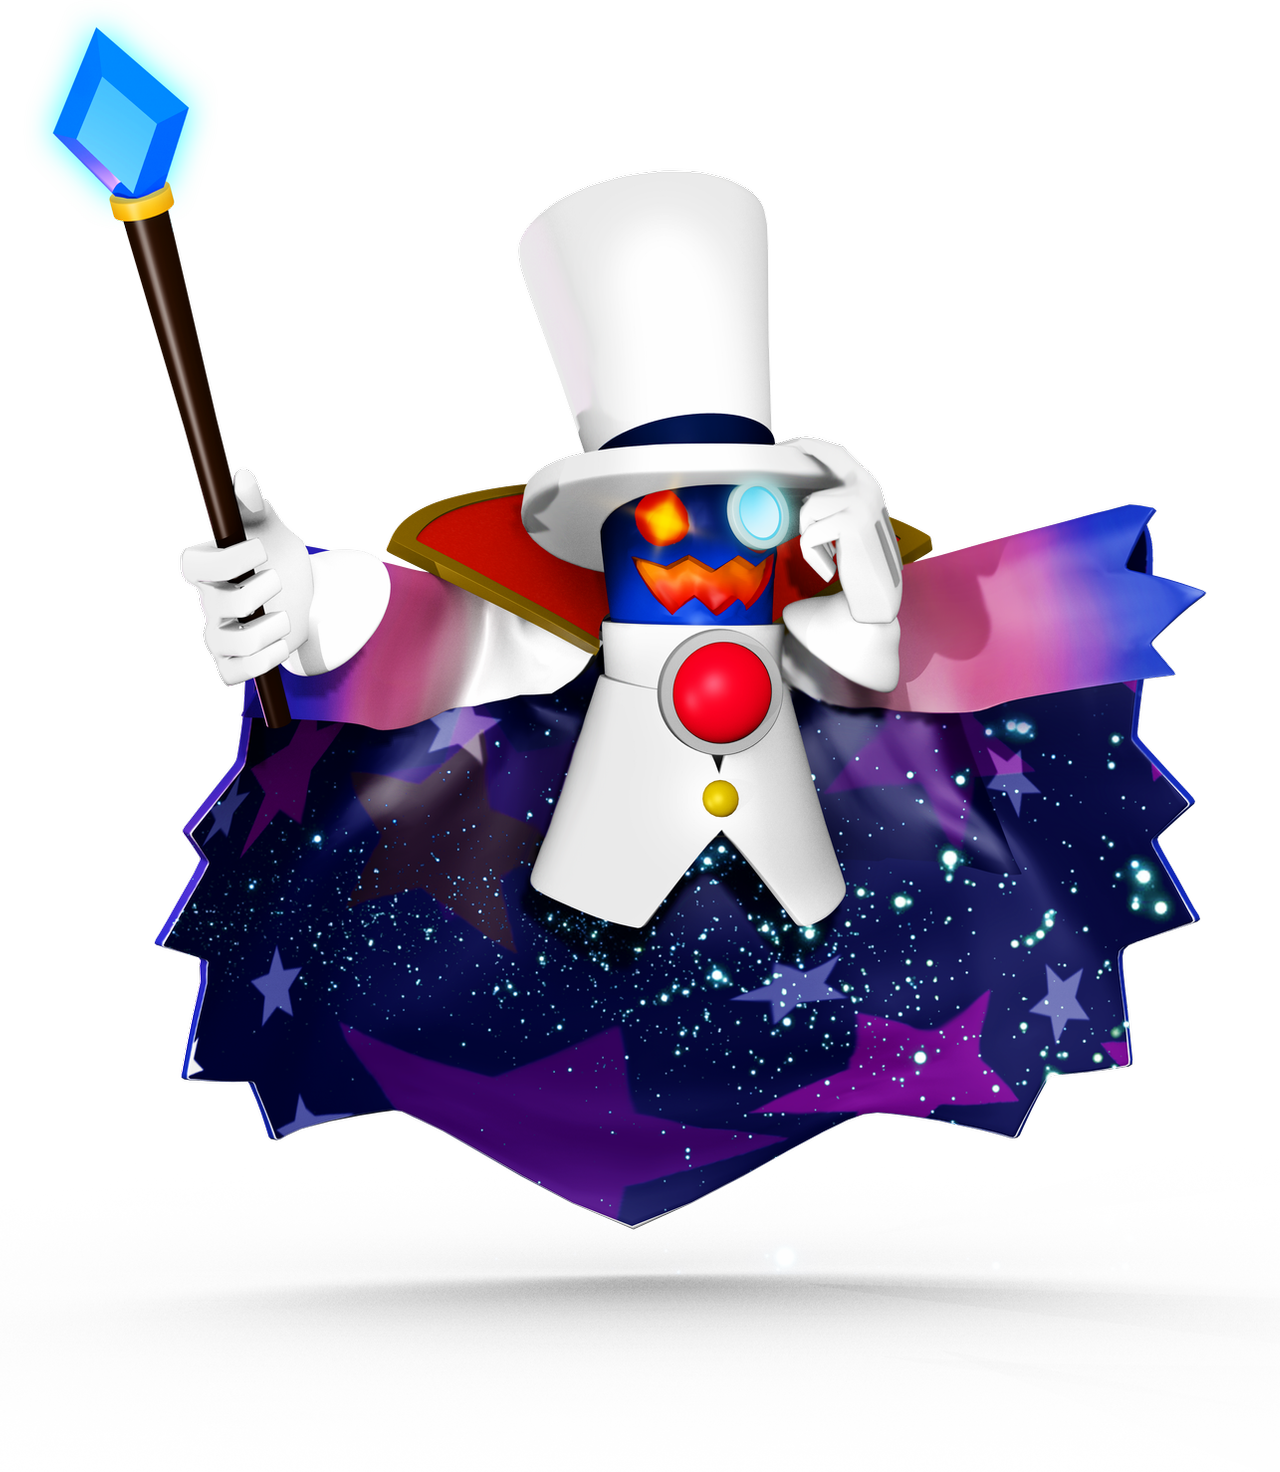 champion_of_destruction_by_fawfulthegreat64_dd3wdcz-fullview.png